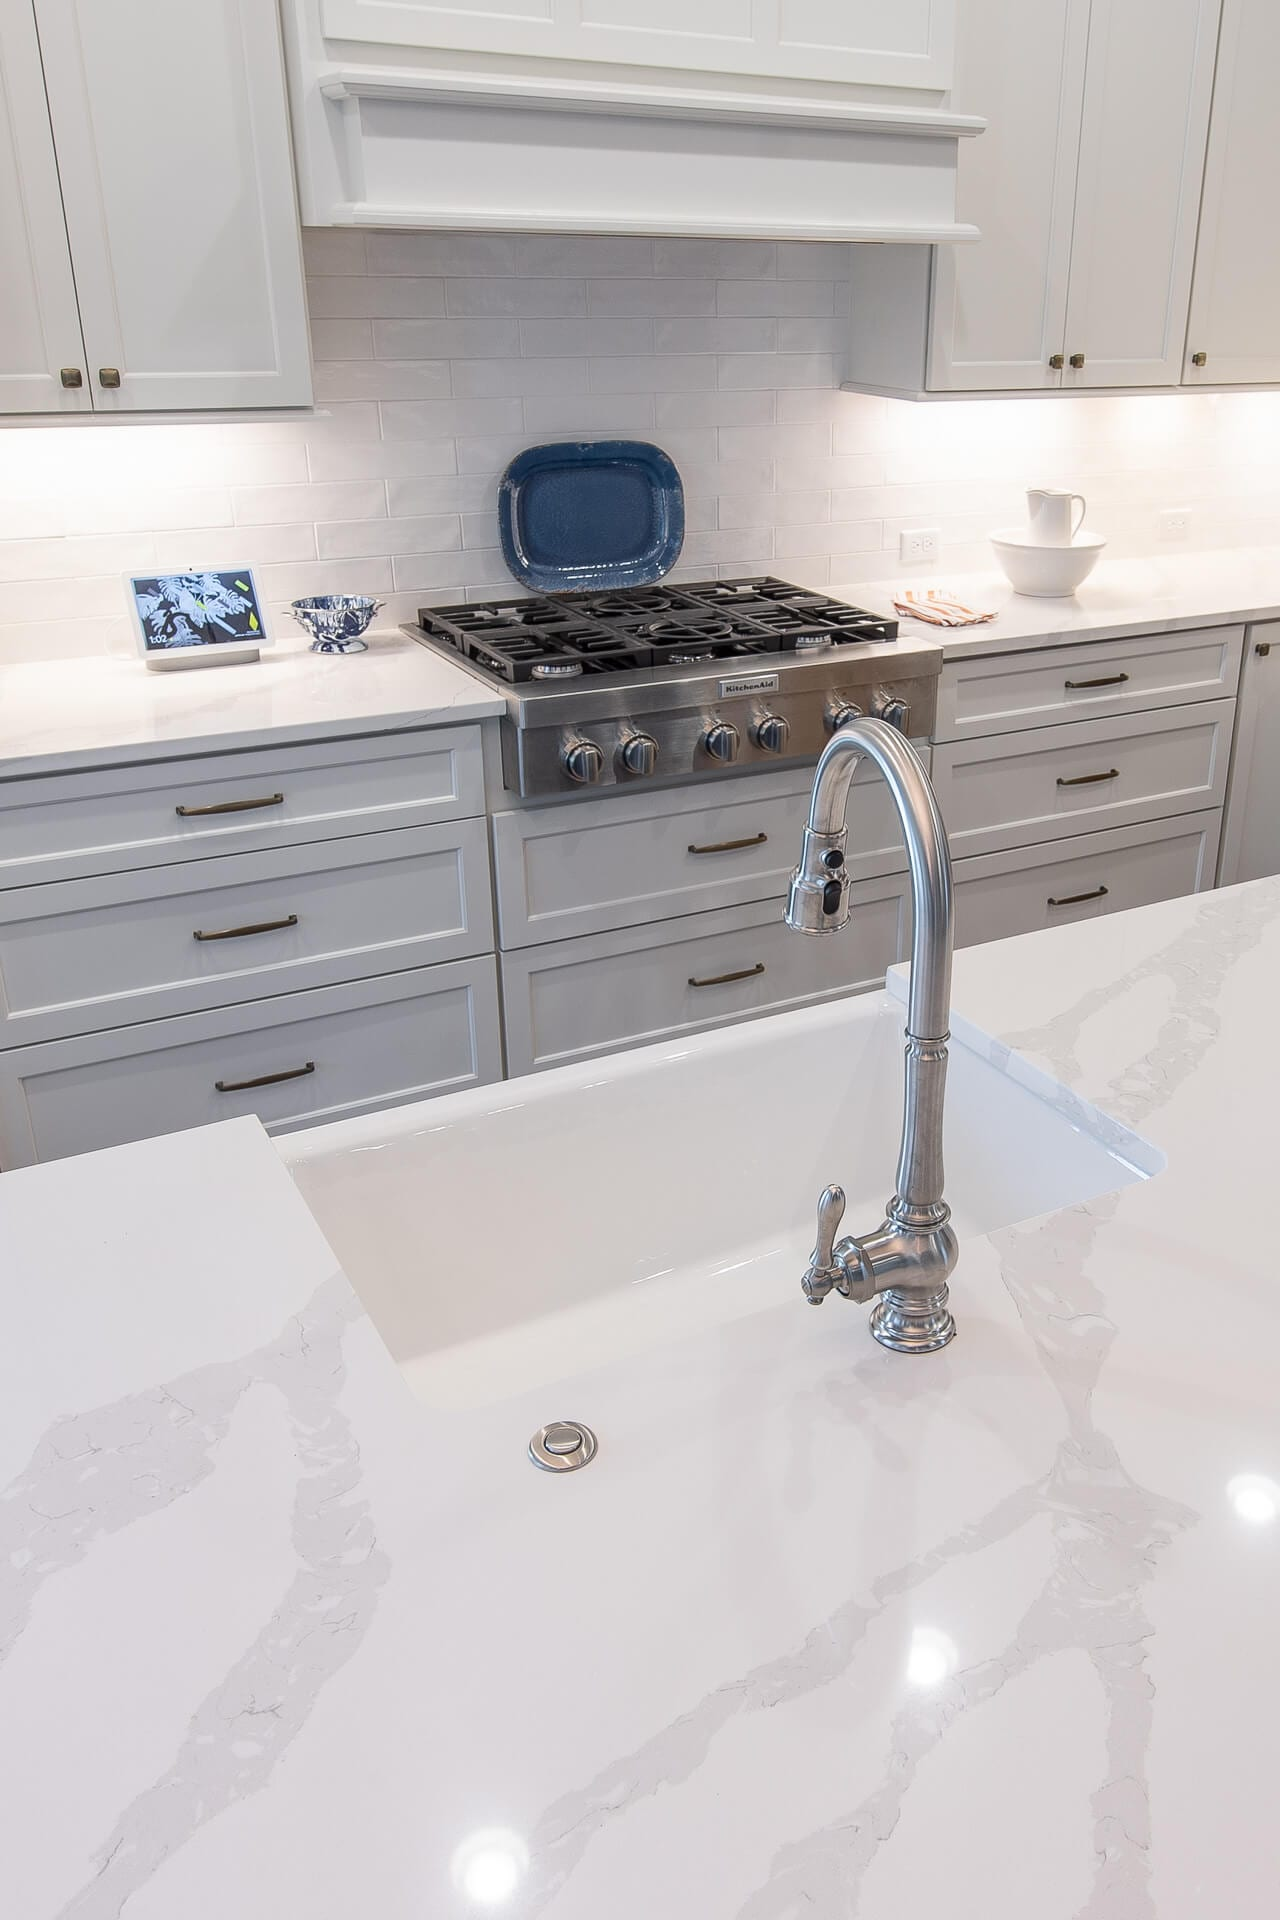 Gallery 11 of a Kitchen Remodel by Magnolia Countertops. A Countertop fabricator of Granite Countertops, Marble Countertops, and Quartz Countertops in Cookeville and Crossville TN.